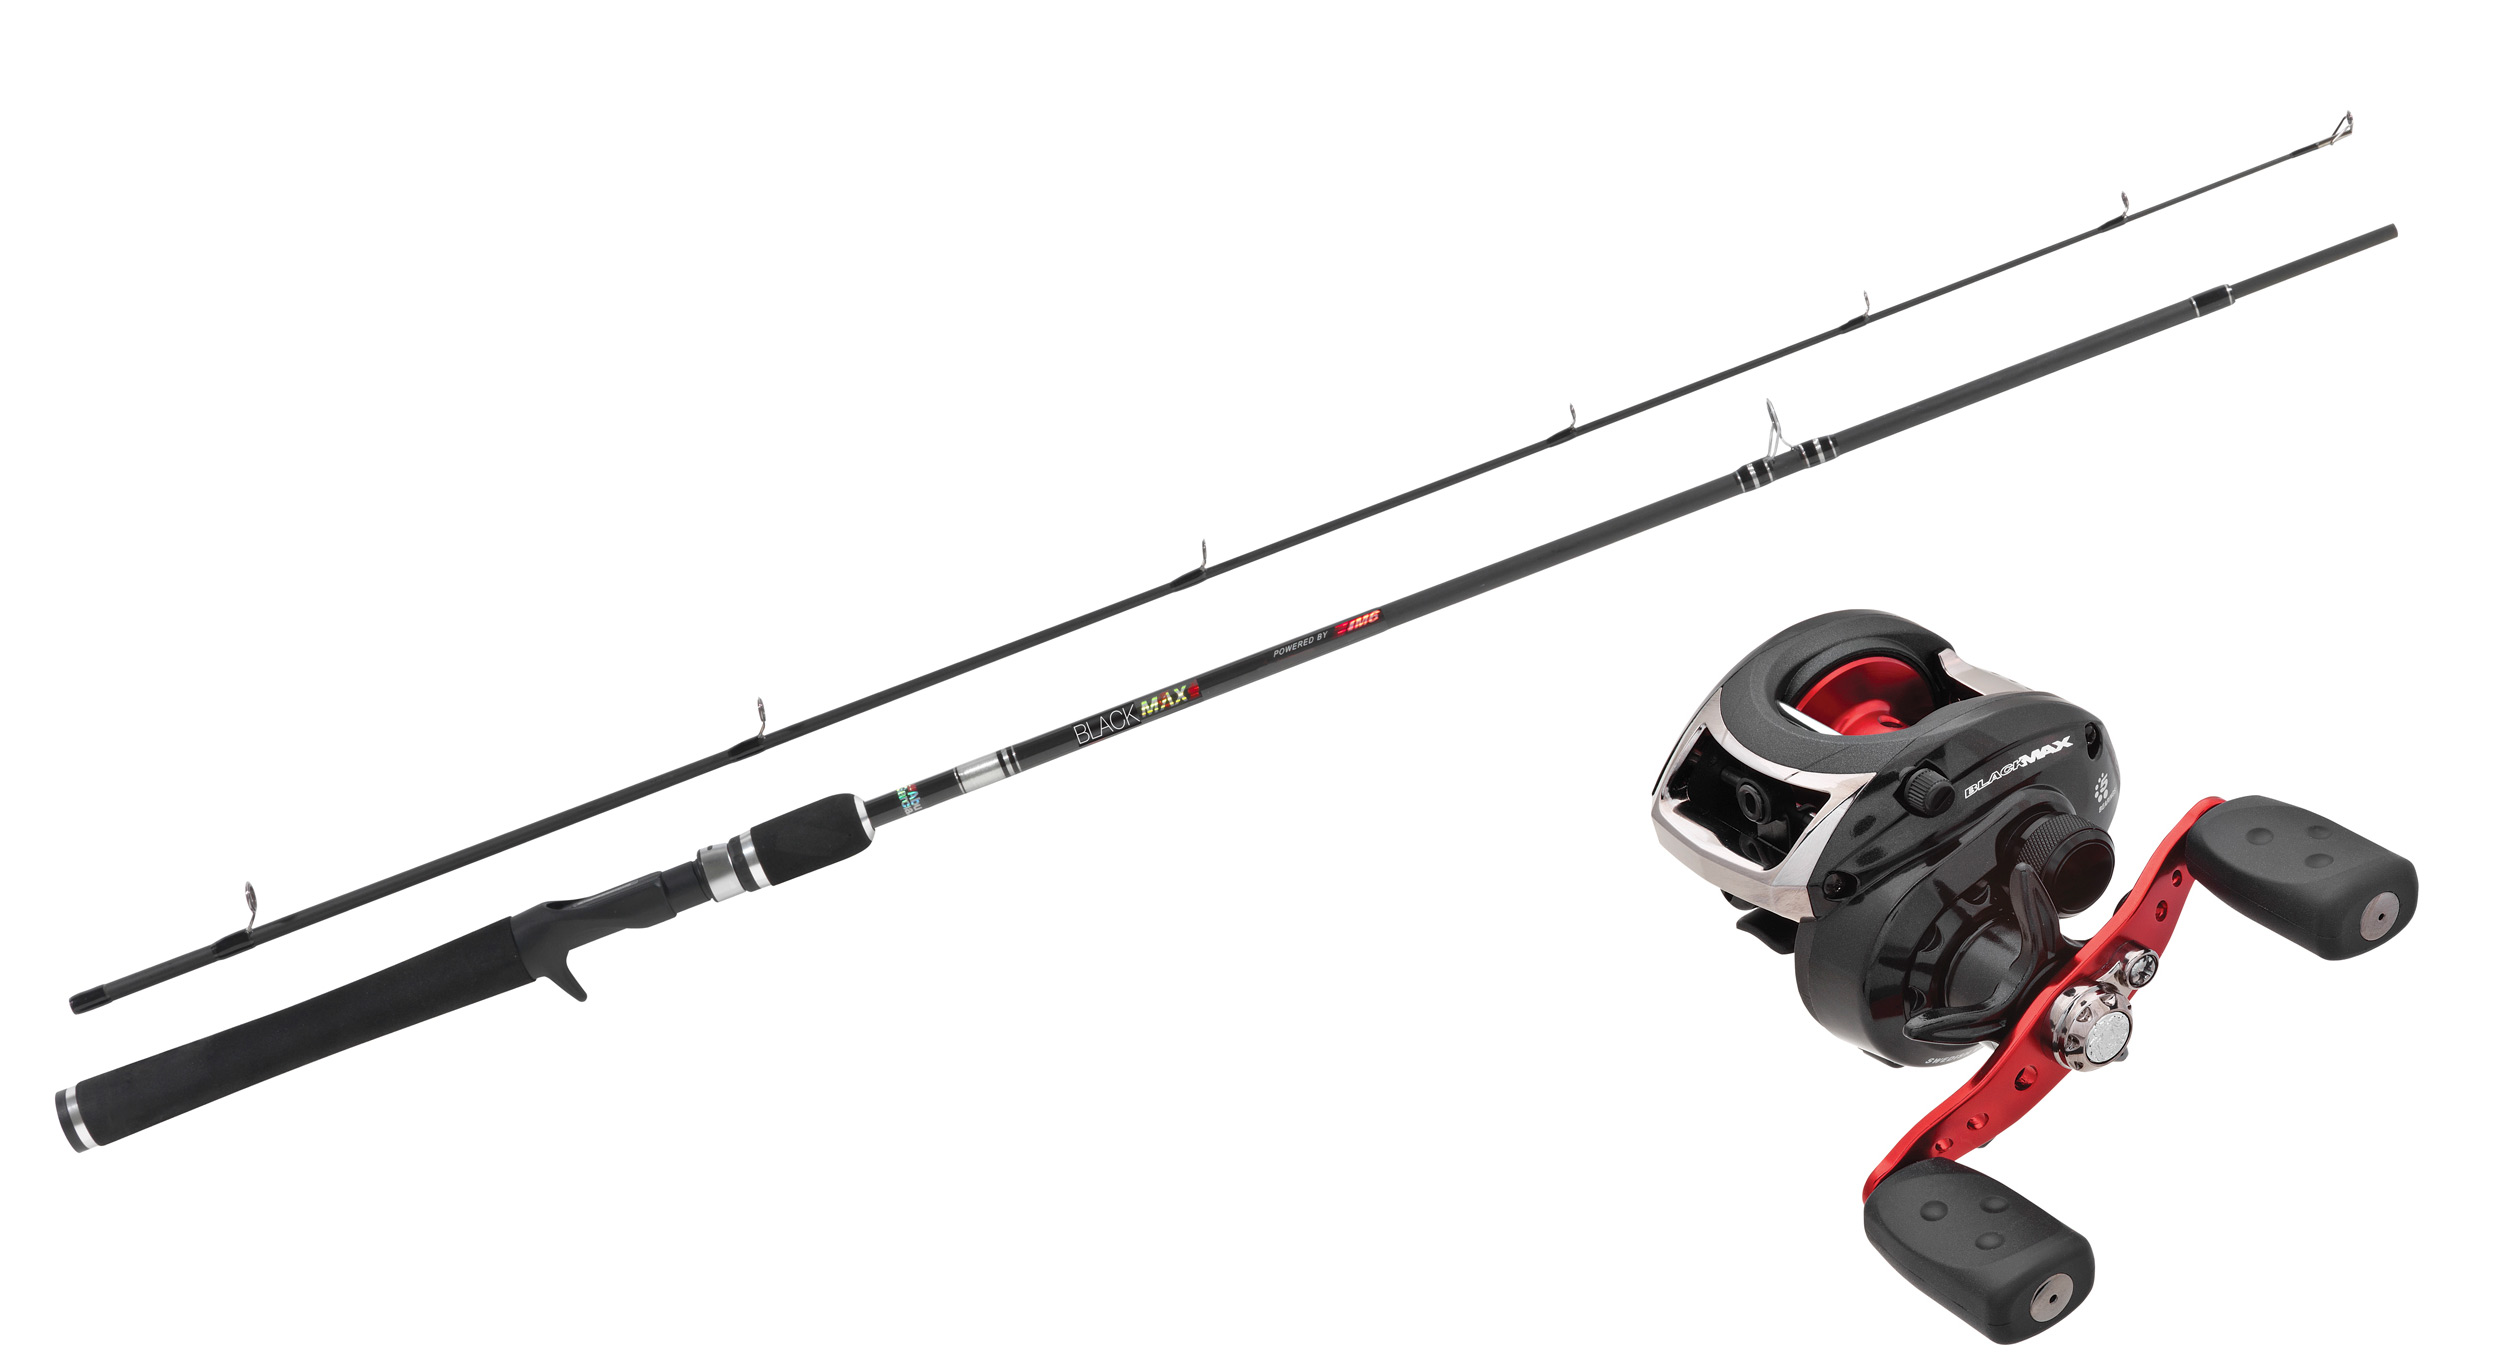 Abu garcia black max combo rod 1 97m 10 40g left for Left handed fishing pole